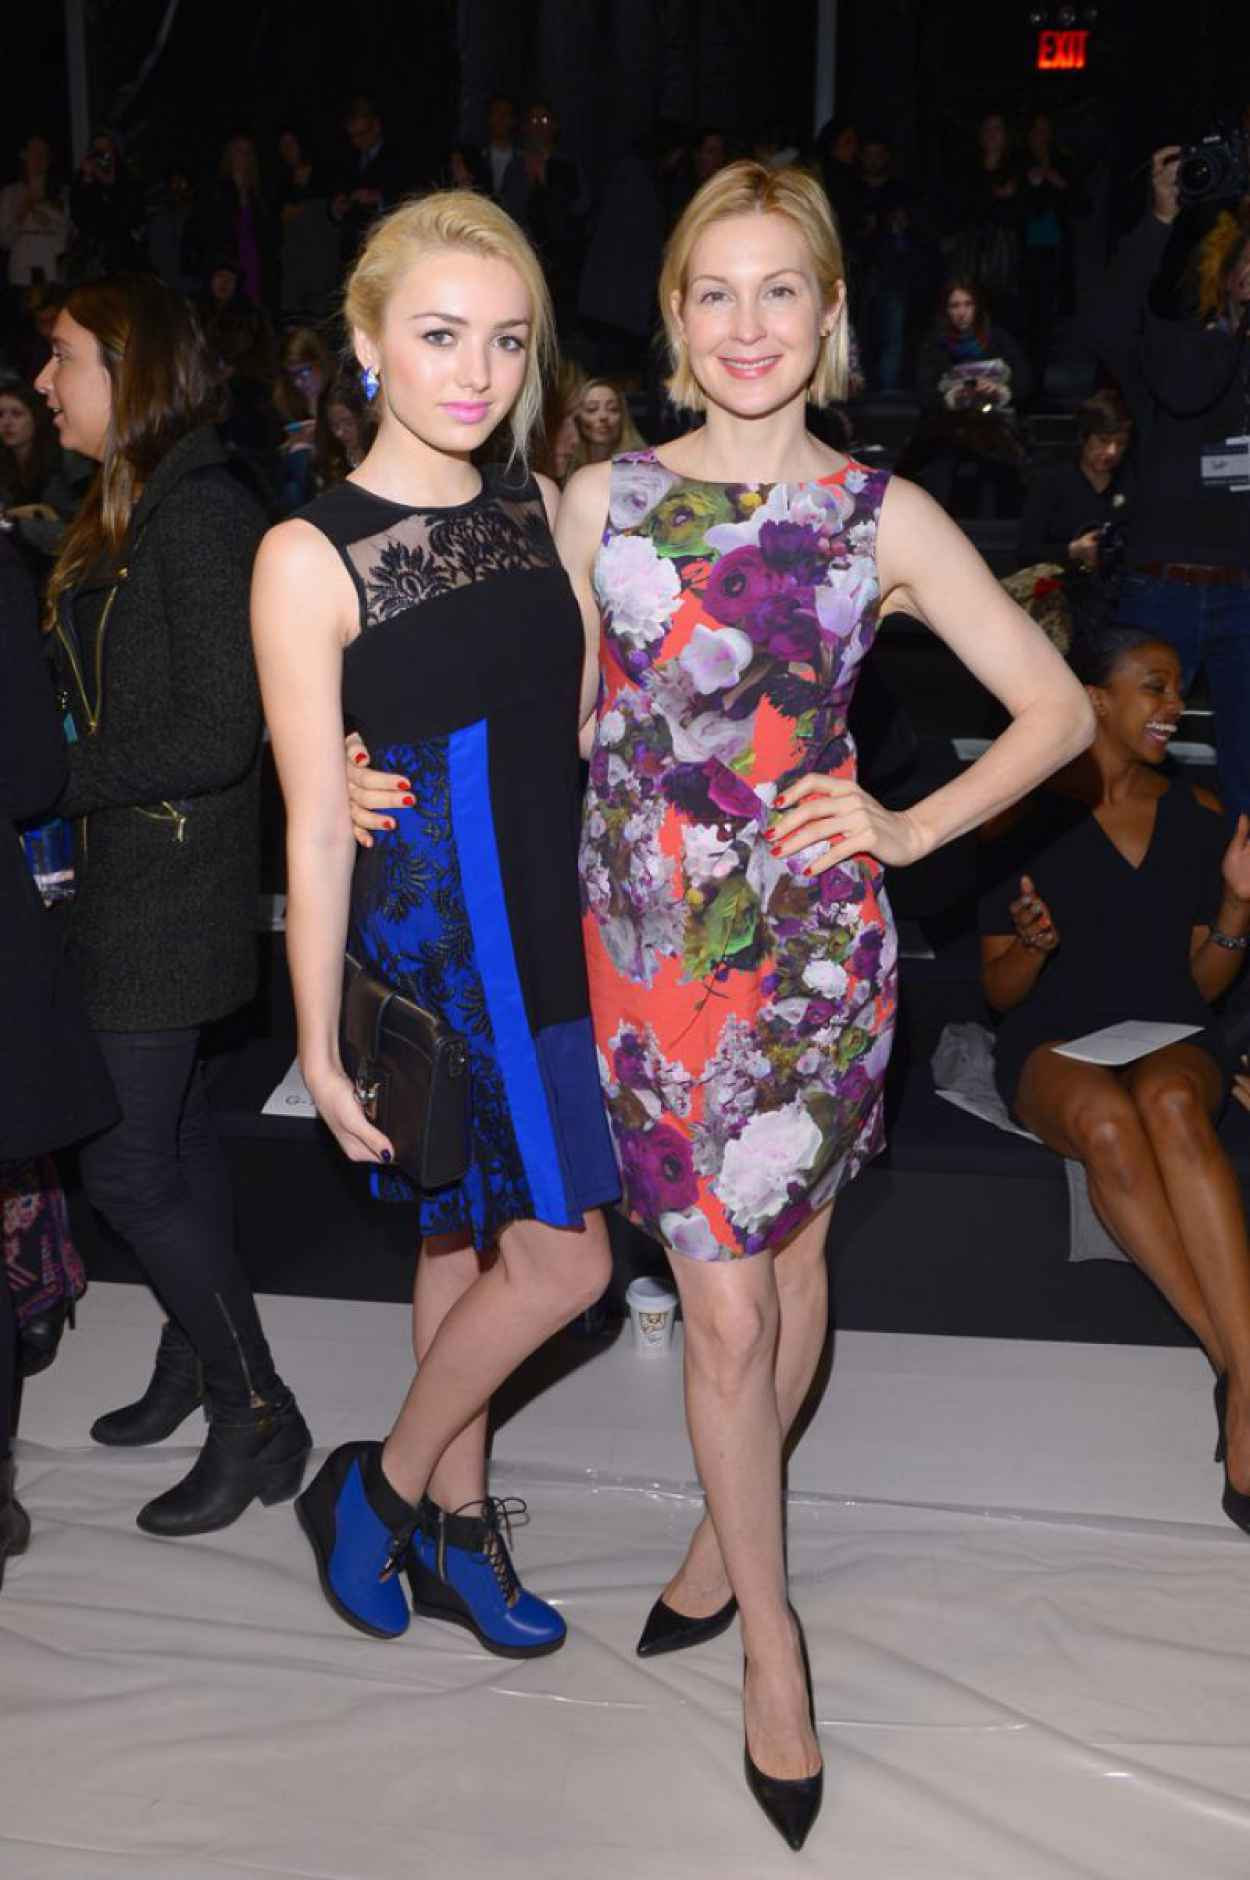 Kelly Rutherford at Nanette Lepore Fashion Show in New York City, Feb. 2015-1